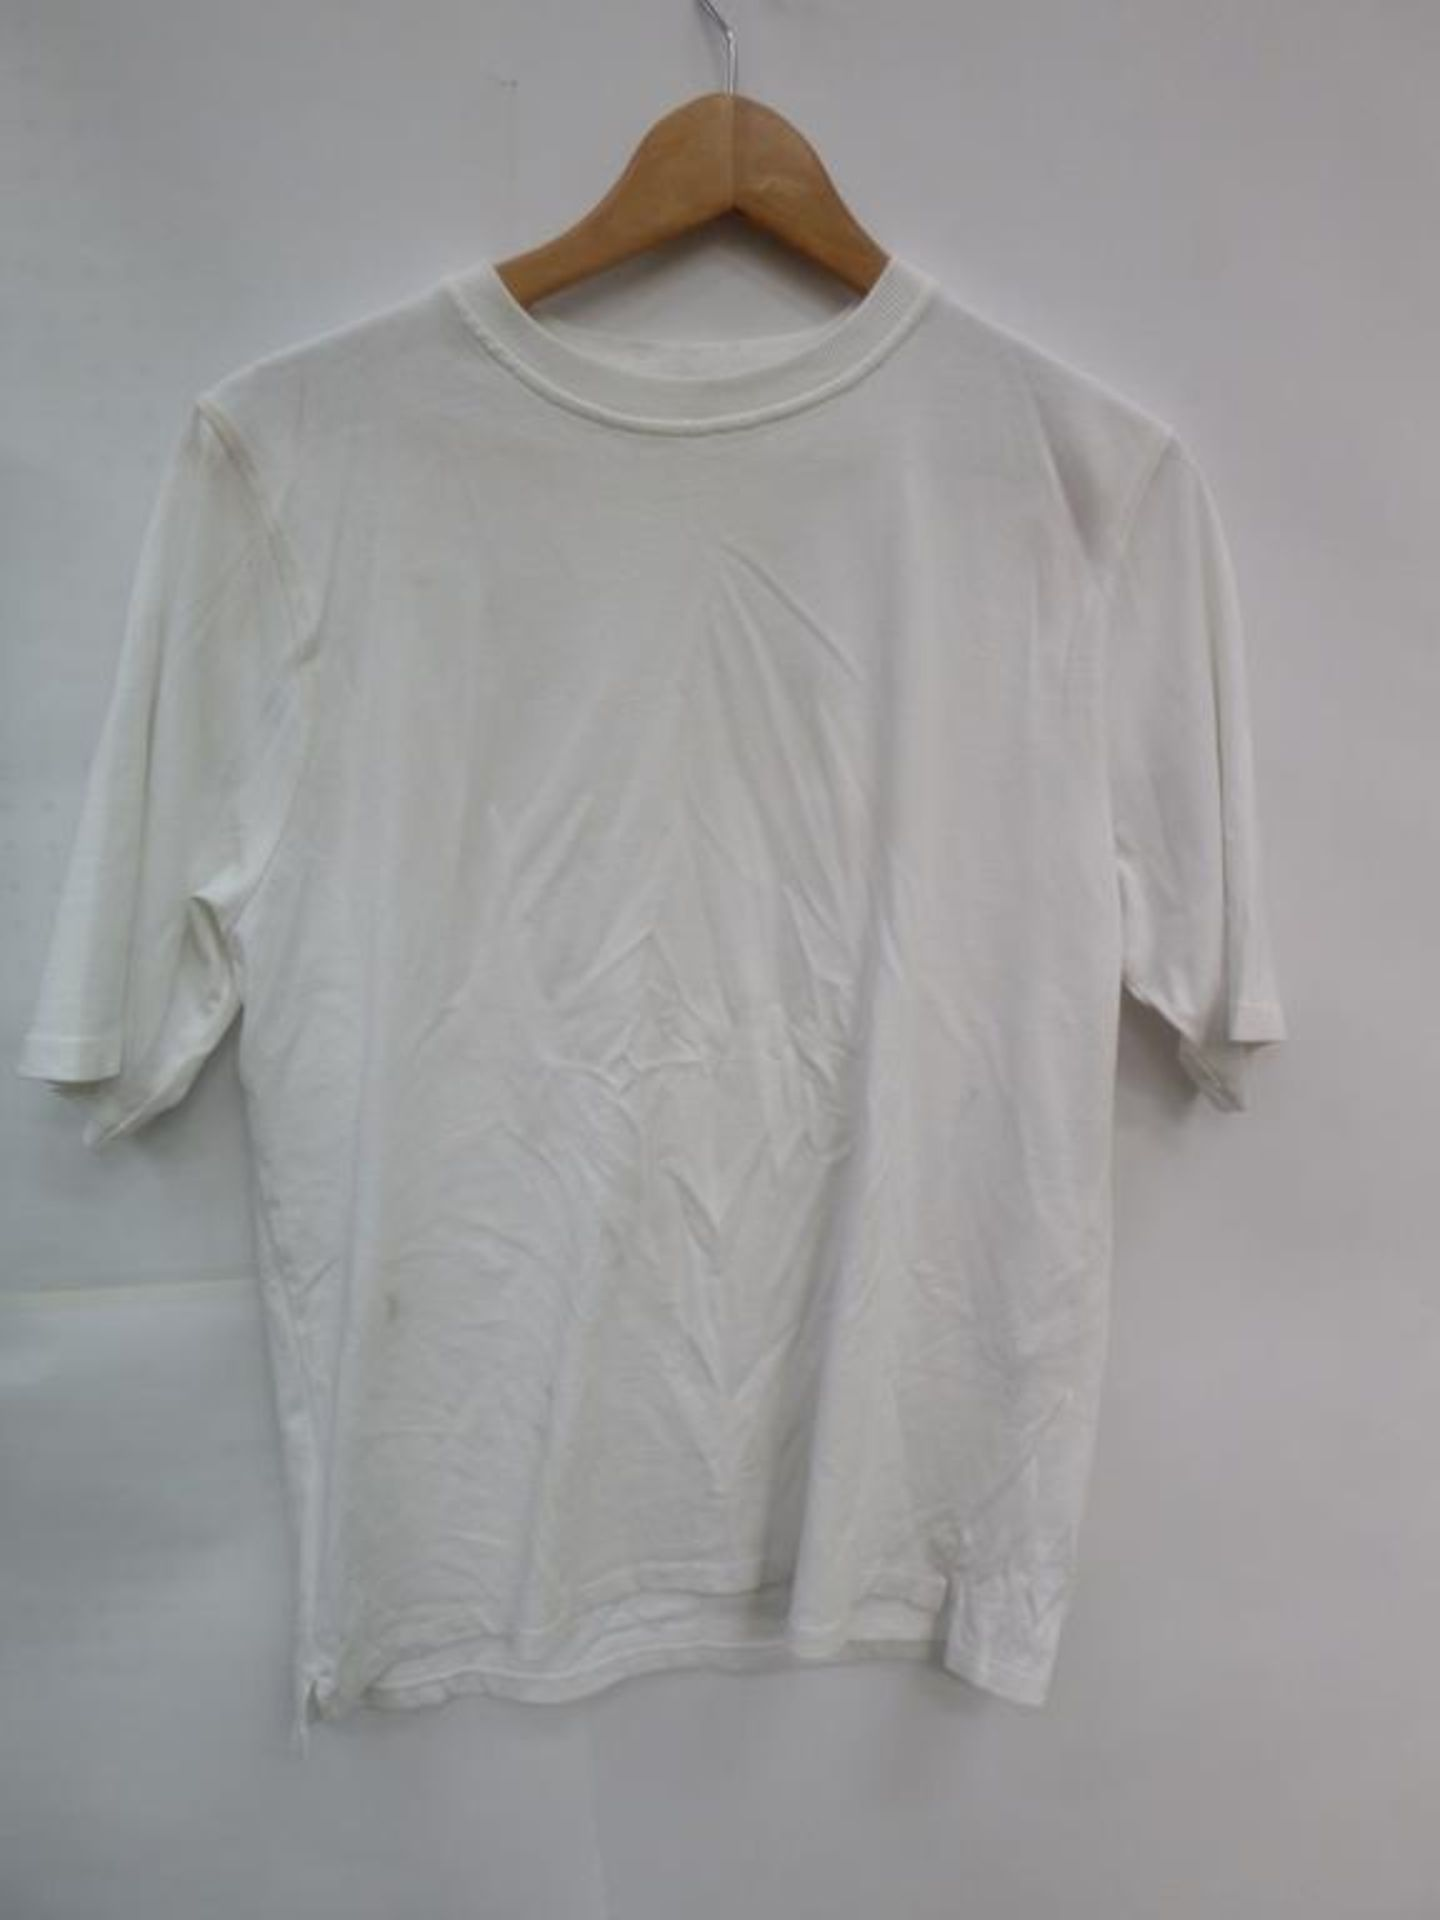 Lot 726 - Three White Short Sleeve T-Shirt (2 XS, M), White Long Sleeve Jacket (S), Bright Yellow 'MX ISM' T-